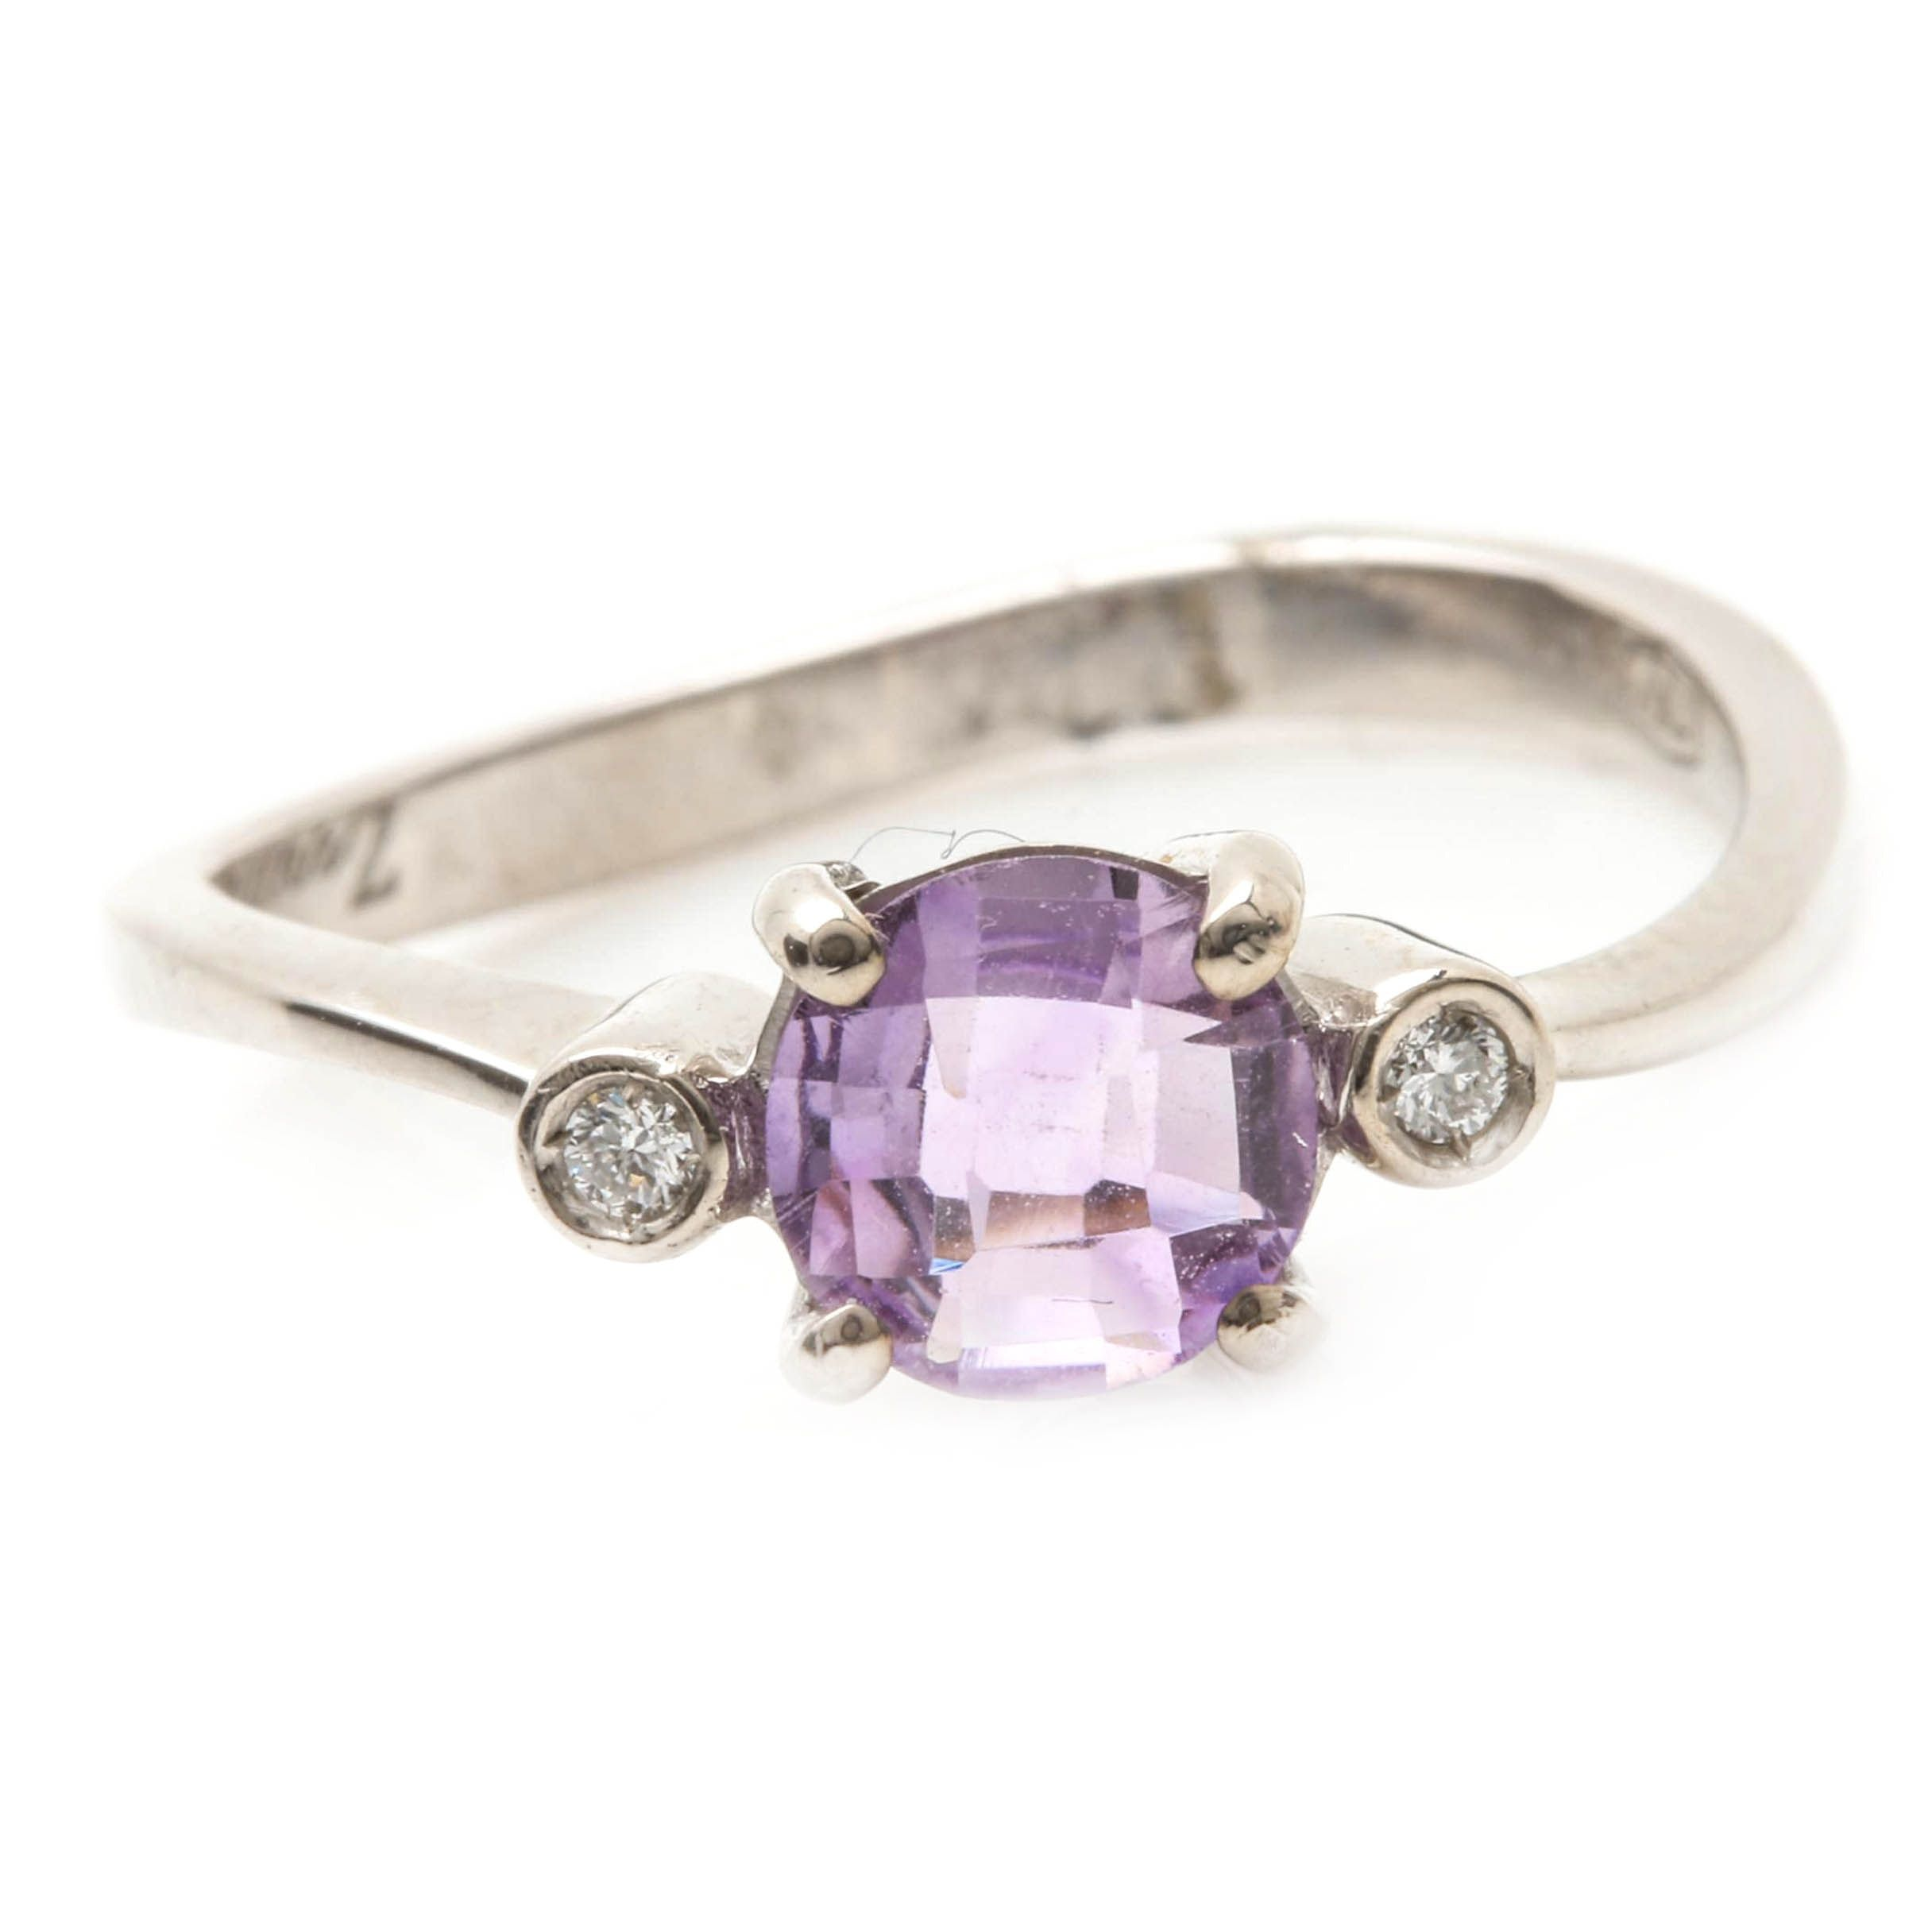 Zoccai 18K White Gold Amethyst and Diamond Ring